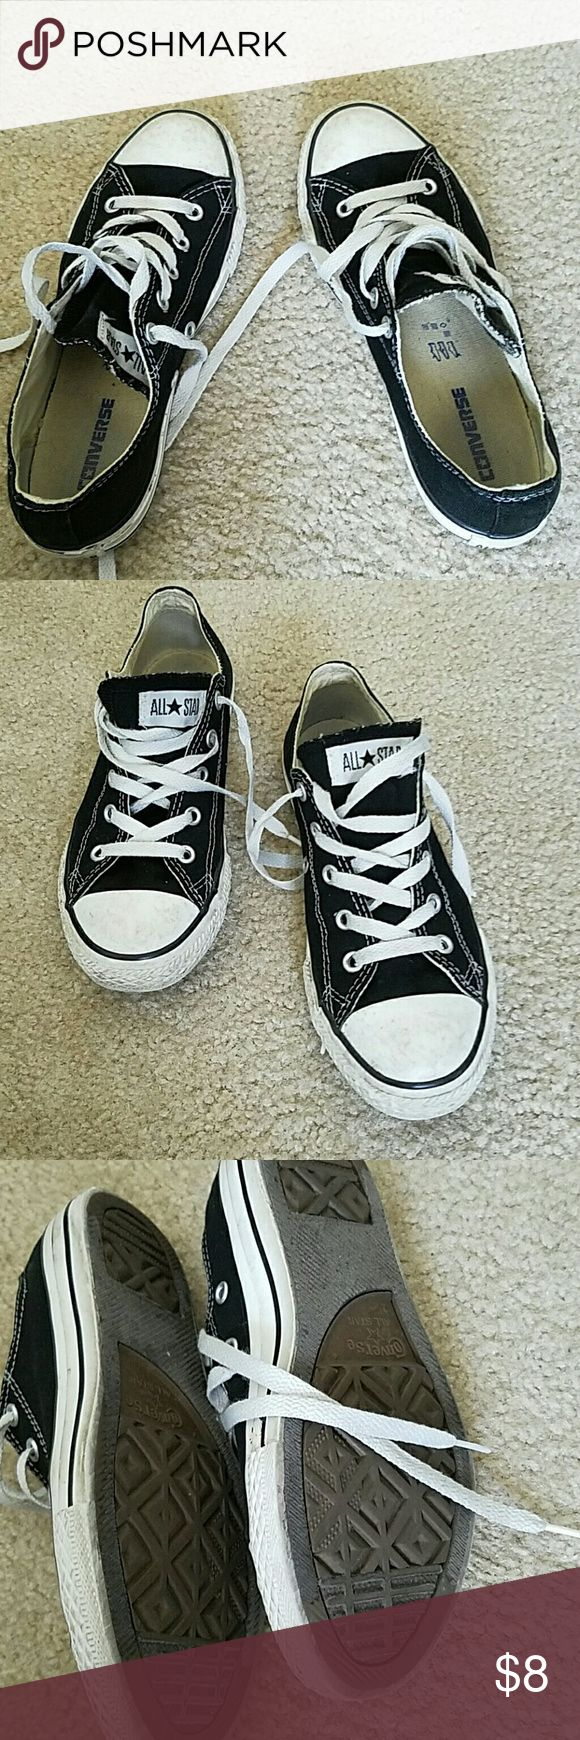 Used Converse Used Converse that have been loved. These converse are going to need some care. They need cleaning and maybe some new laces. The black fabric is a bit faded. The last picture shows the dirt on the shoes and the dirt is like that all around the shoes.  !!!!!!! PRICE BASED ON CONDITION!!!!!   US size 2 UK size 1.5 Converse Shoes Sneakers